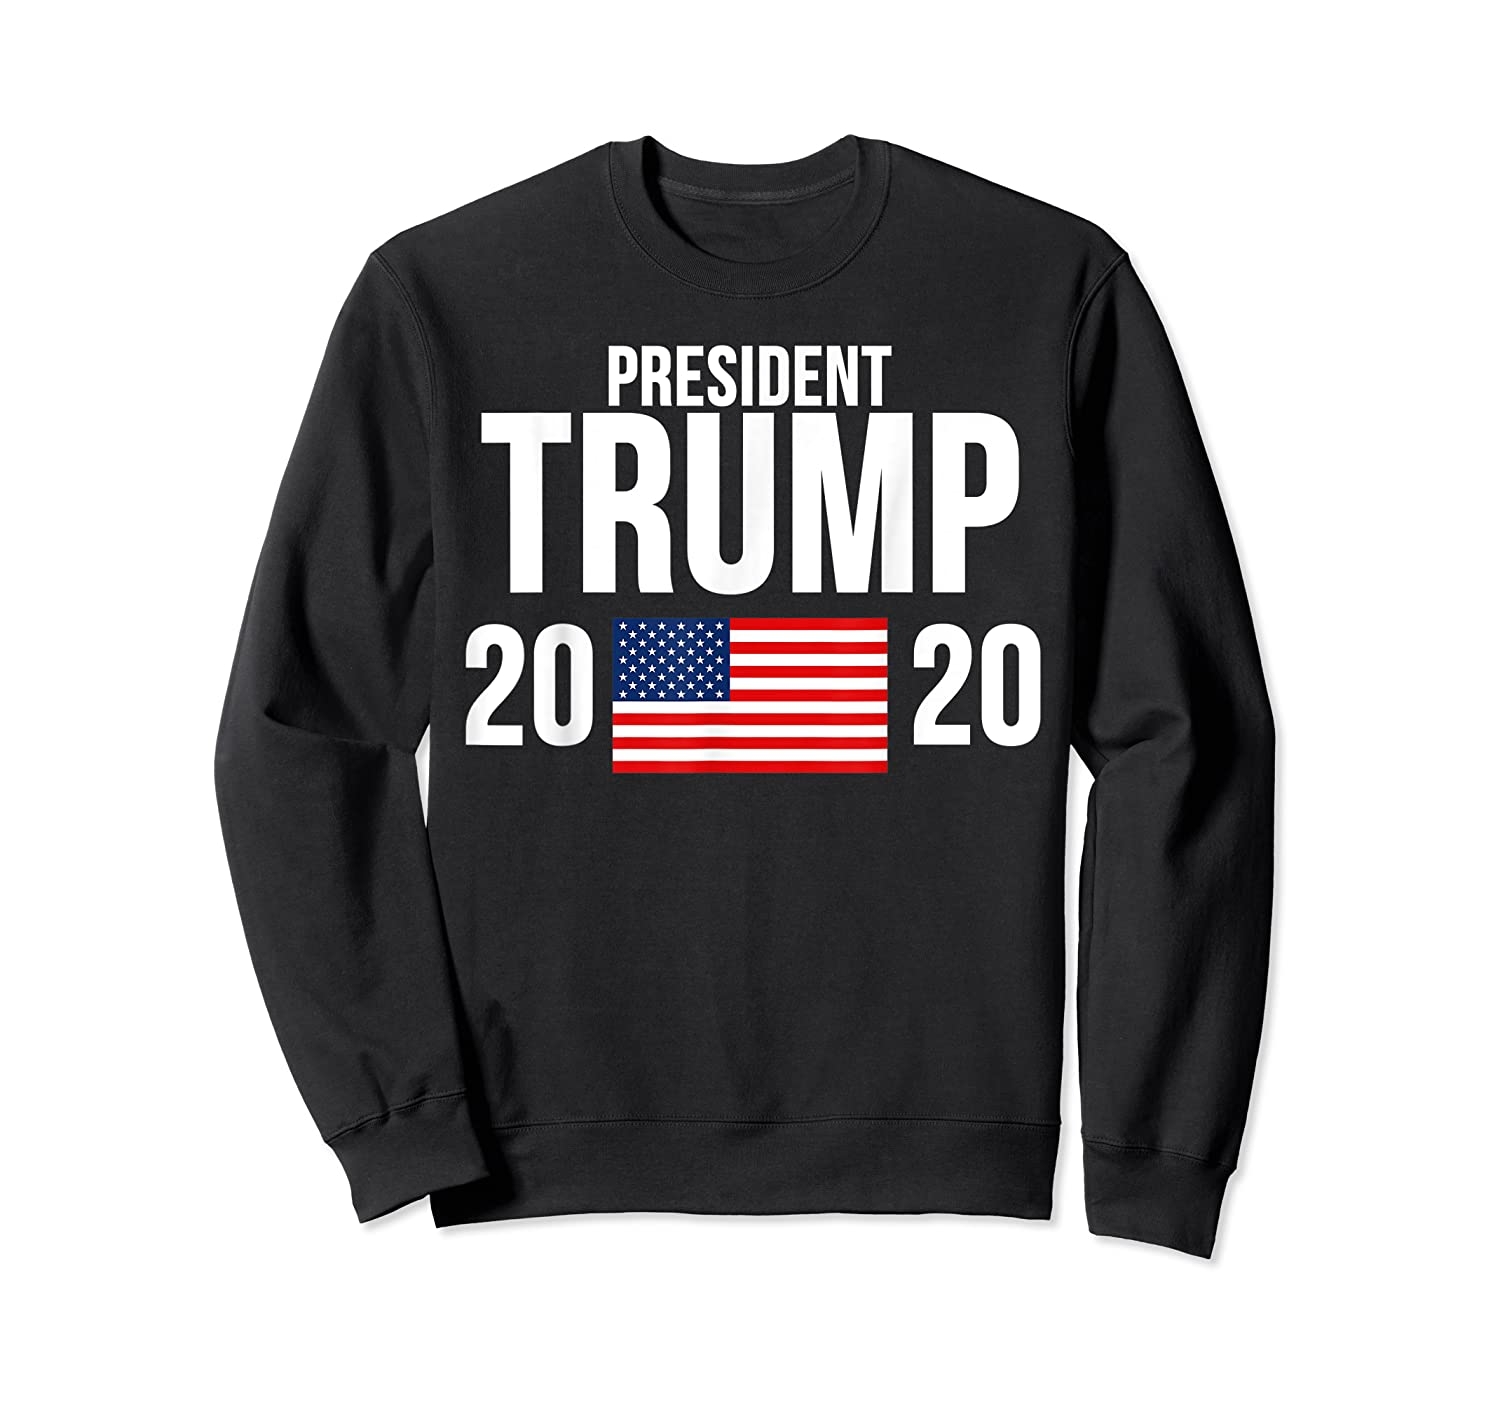 President Trump 2020 Presidential Campaign Re Election T Shirt Crewneck Sweater